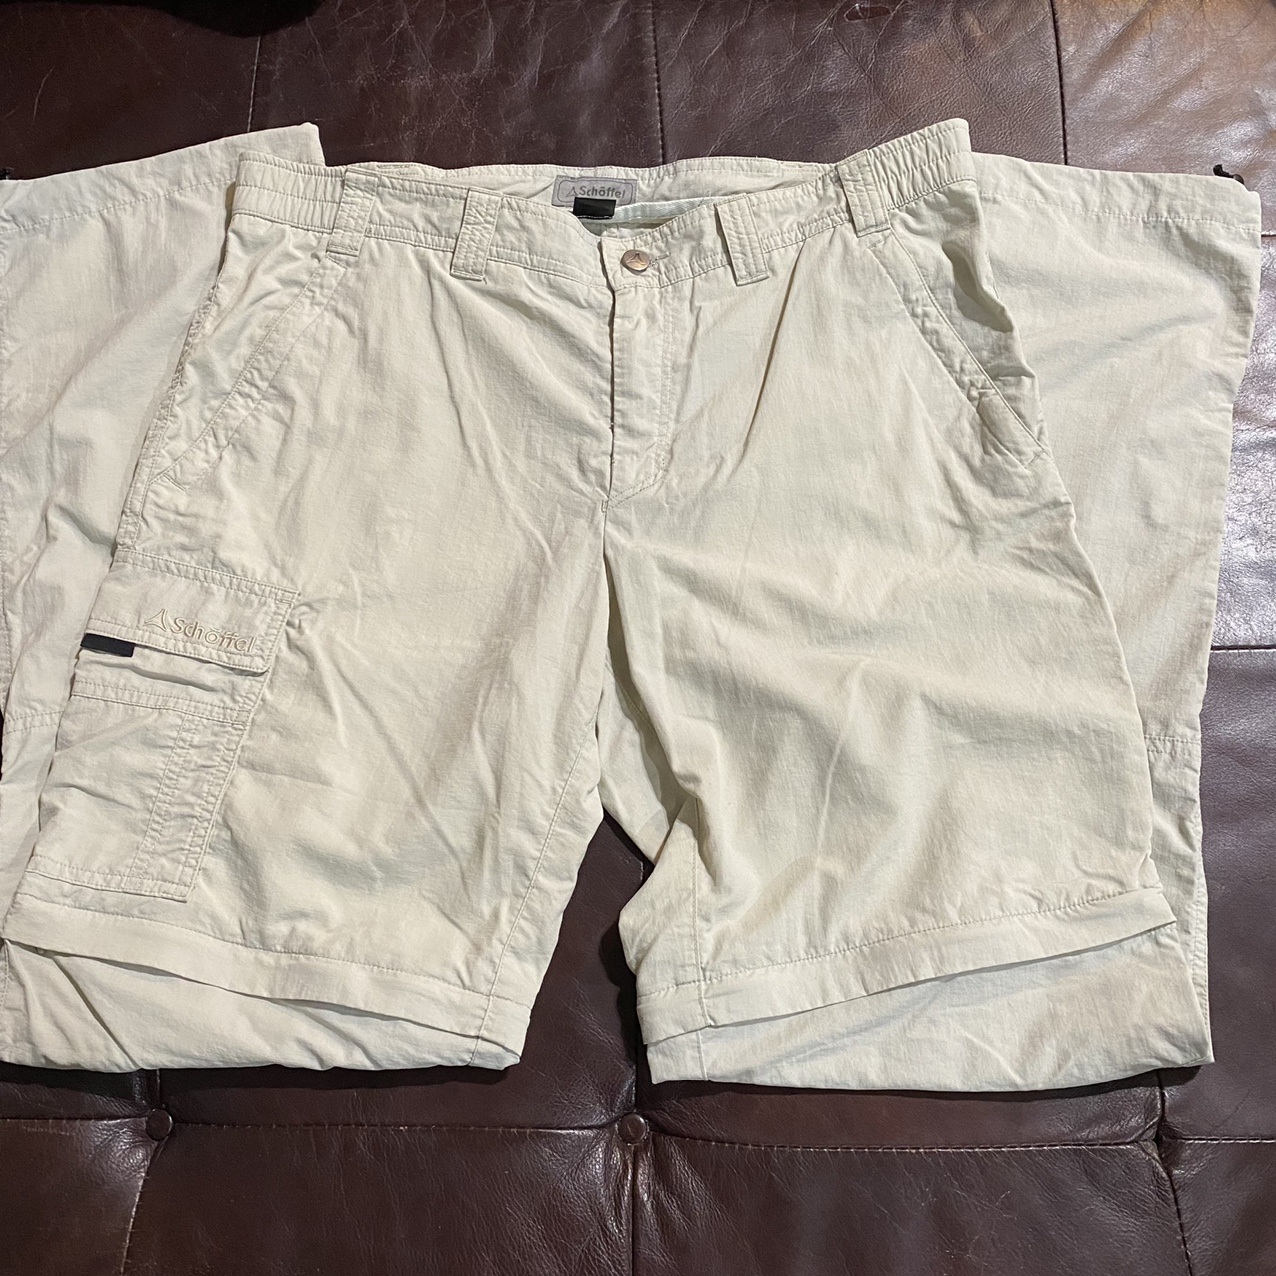 Product Image 1 - Schoffel cargo pants pre-owned size